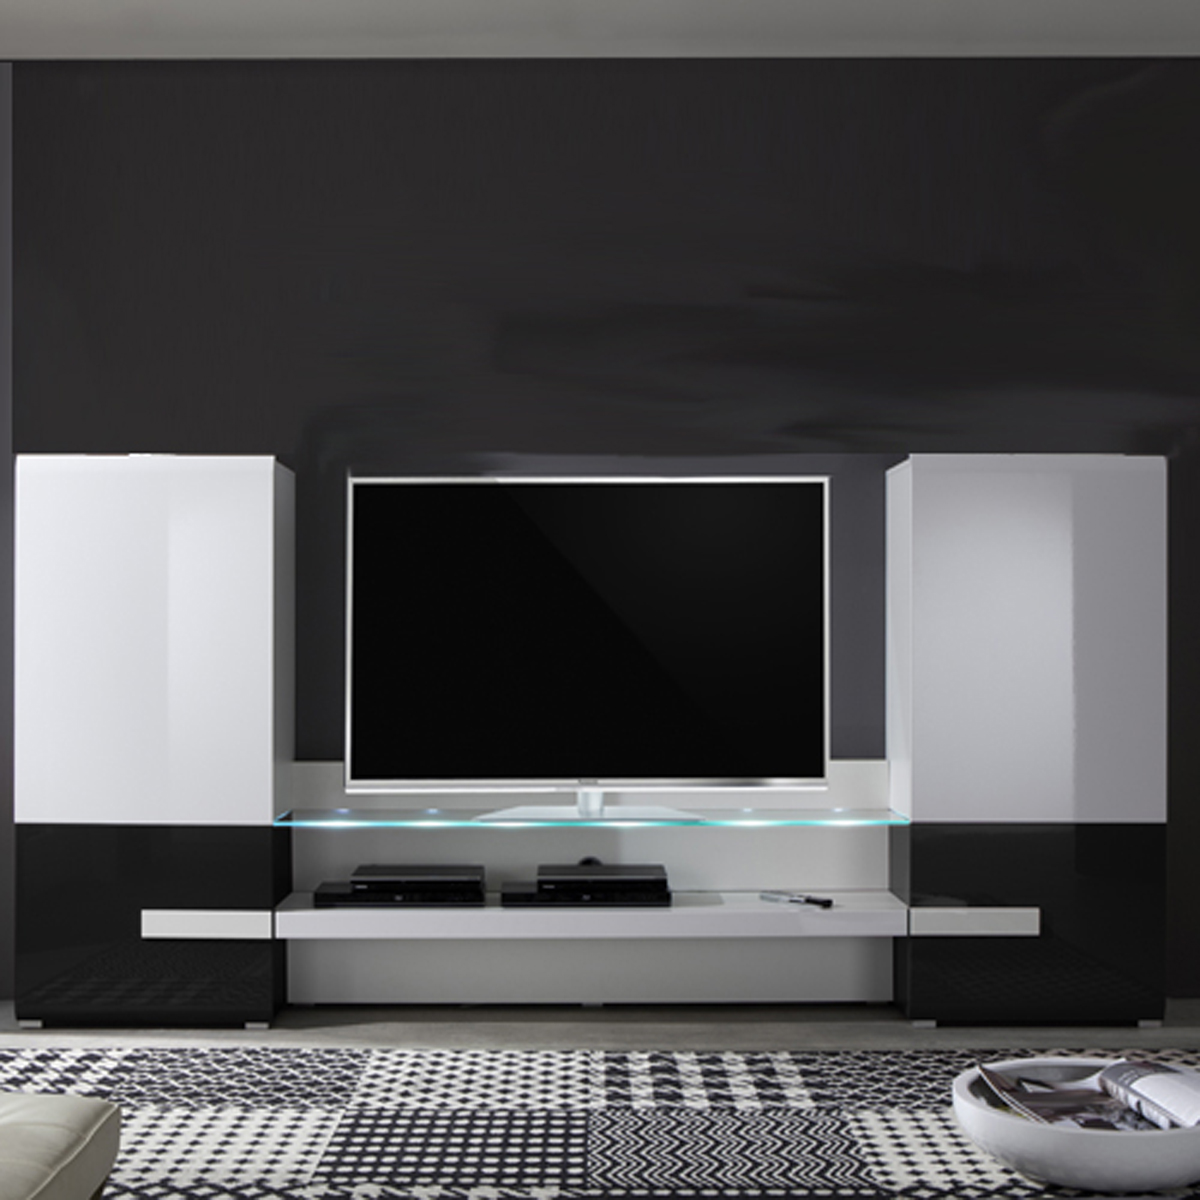 wohnwand tv medienwand anbauwand easyfurn x1 wei schwarz hochglanz 289x146 cm ebay. Black Bedroom Furniture Sets. Home Design Ideas